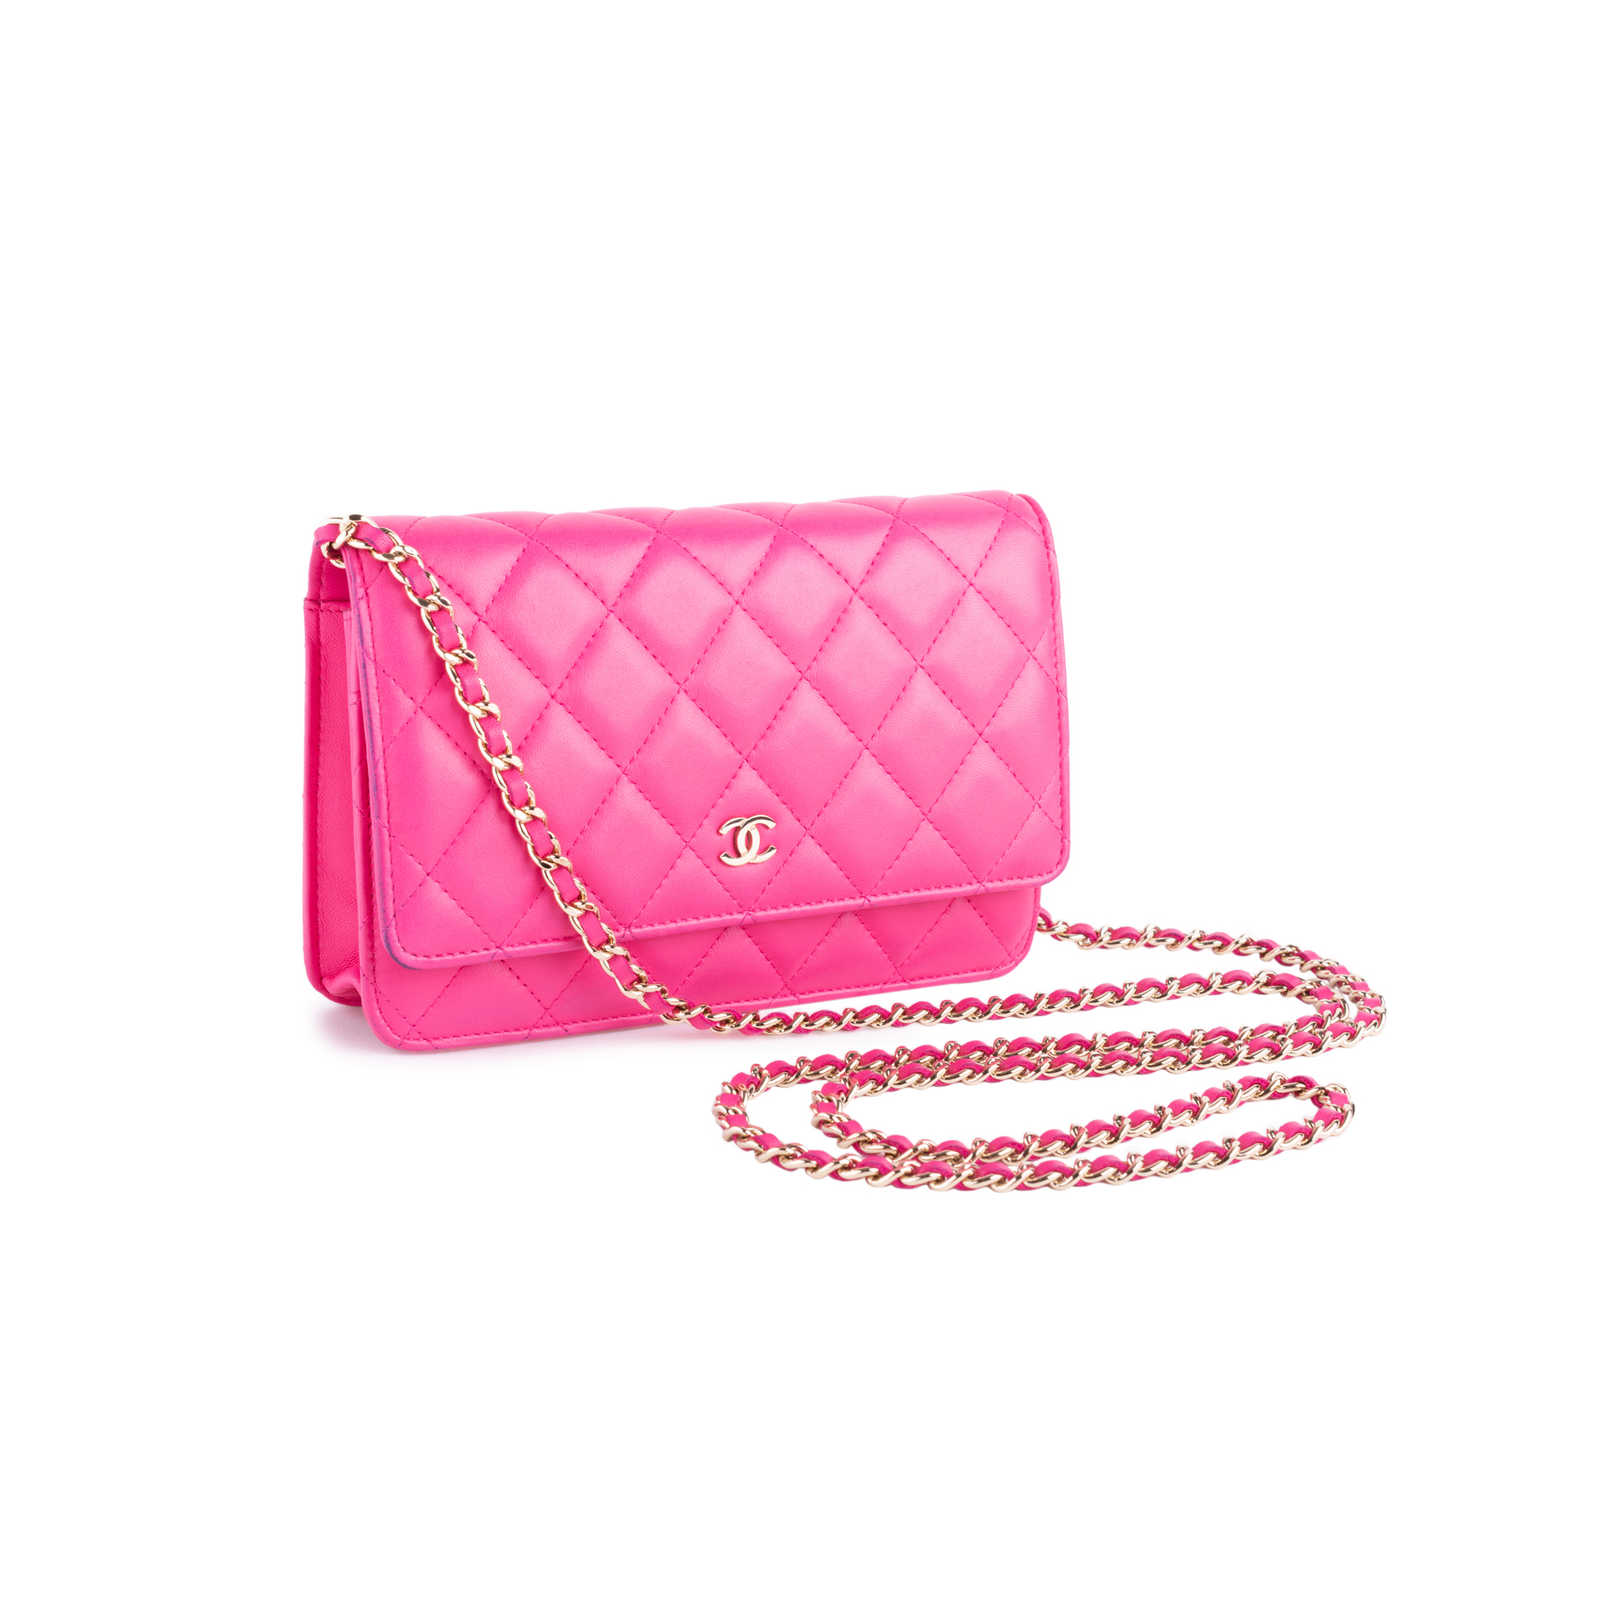 5e07261072b8 ... Authentic Second Hand Chanel Classic Wallet on Chain (PSS-636-00002) ...